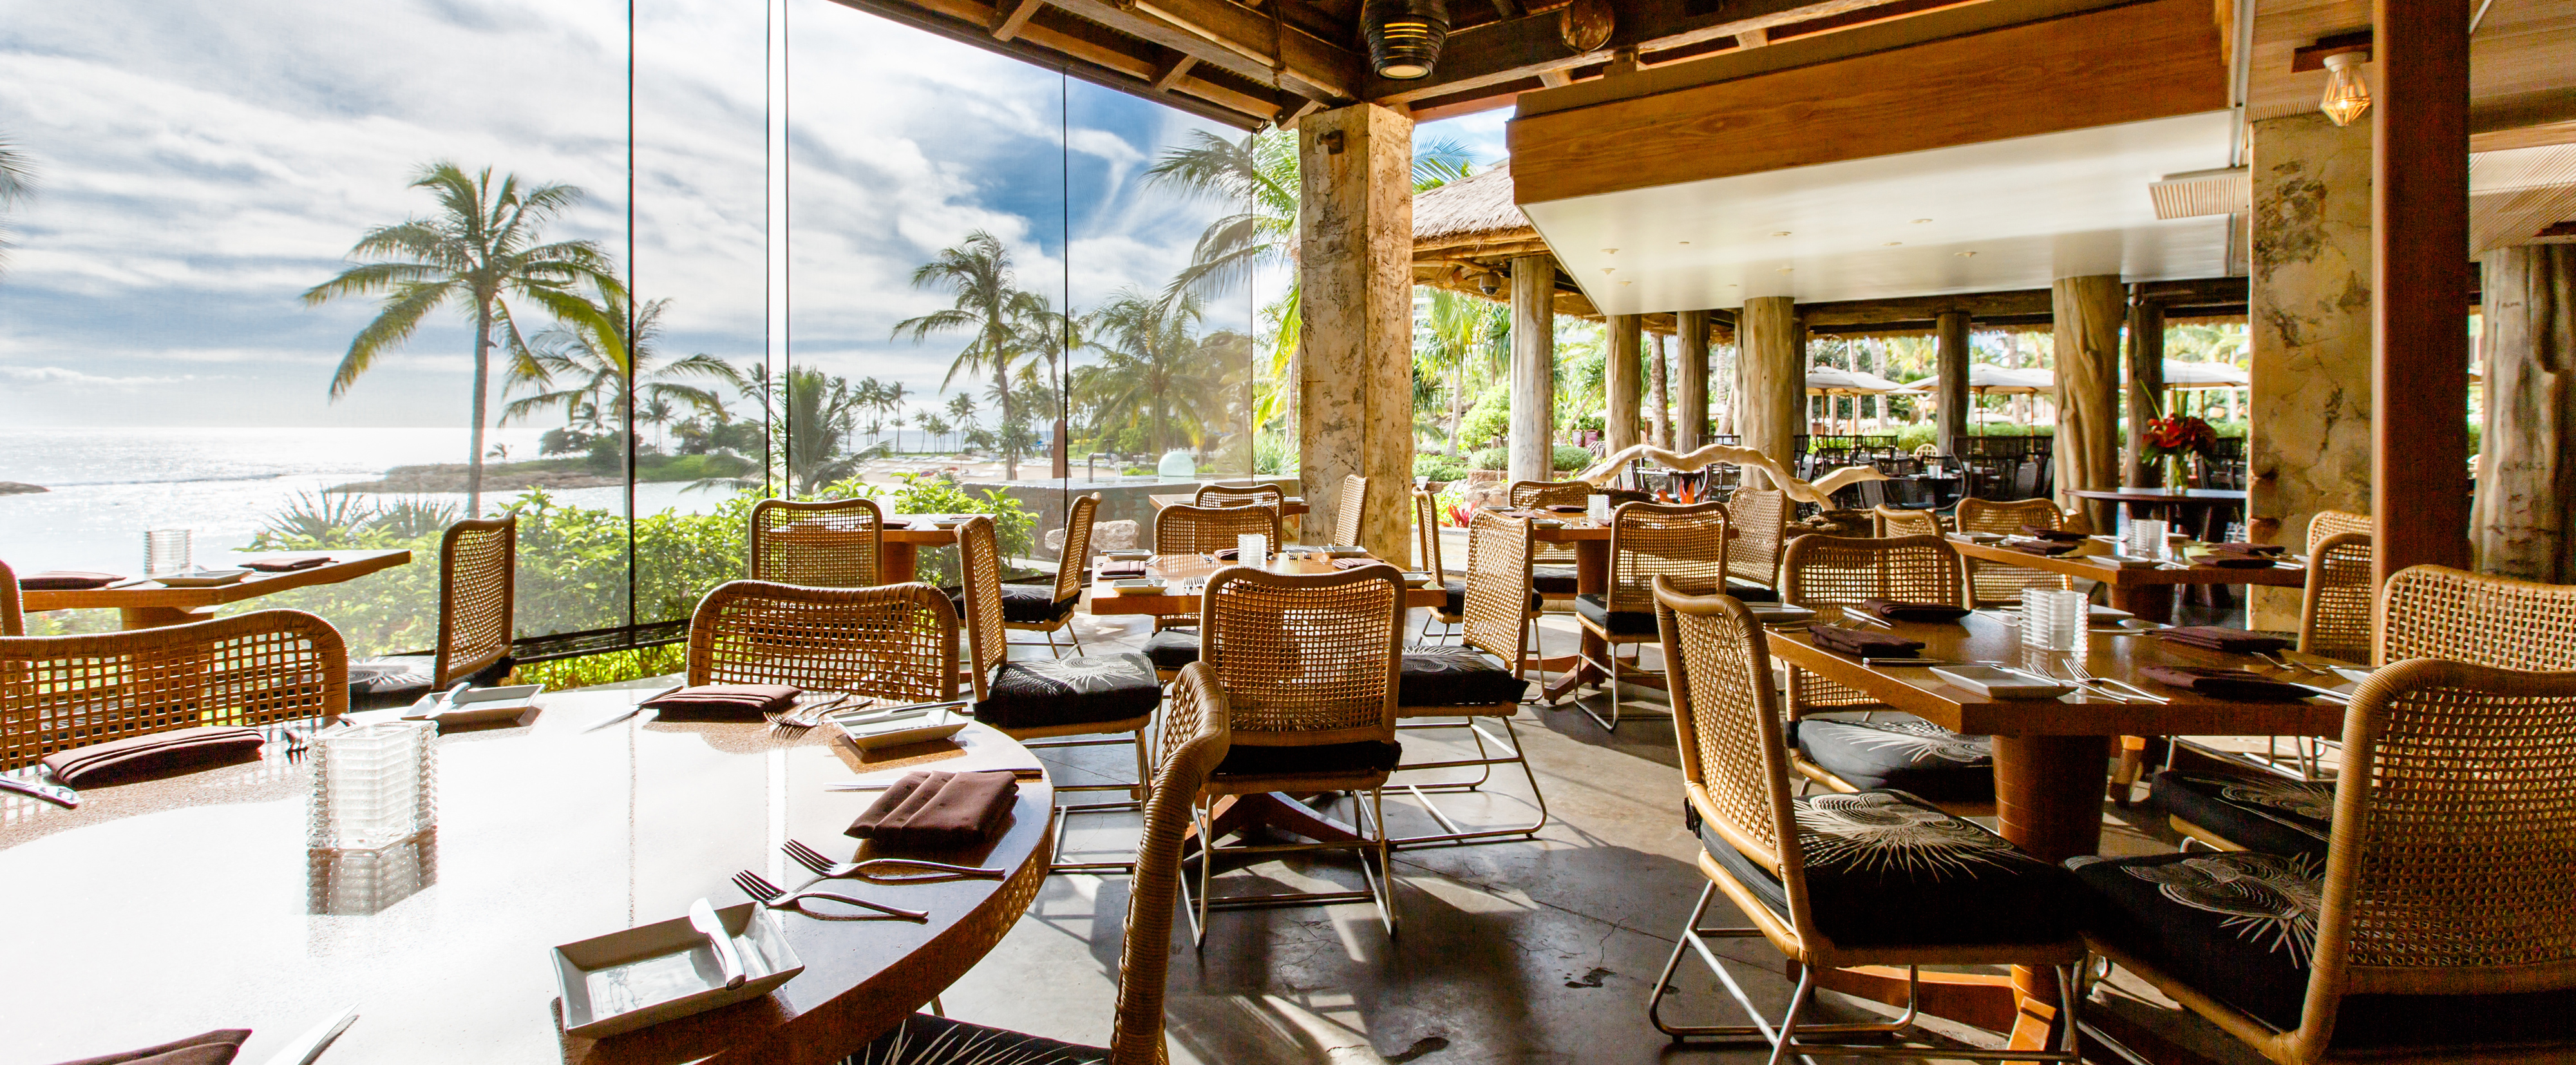 ... With Palm Trees And Tables On A Covered Patio Look Upon Palm Trees And  Ocean Views Through Roll Down ...